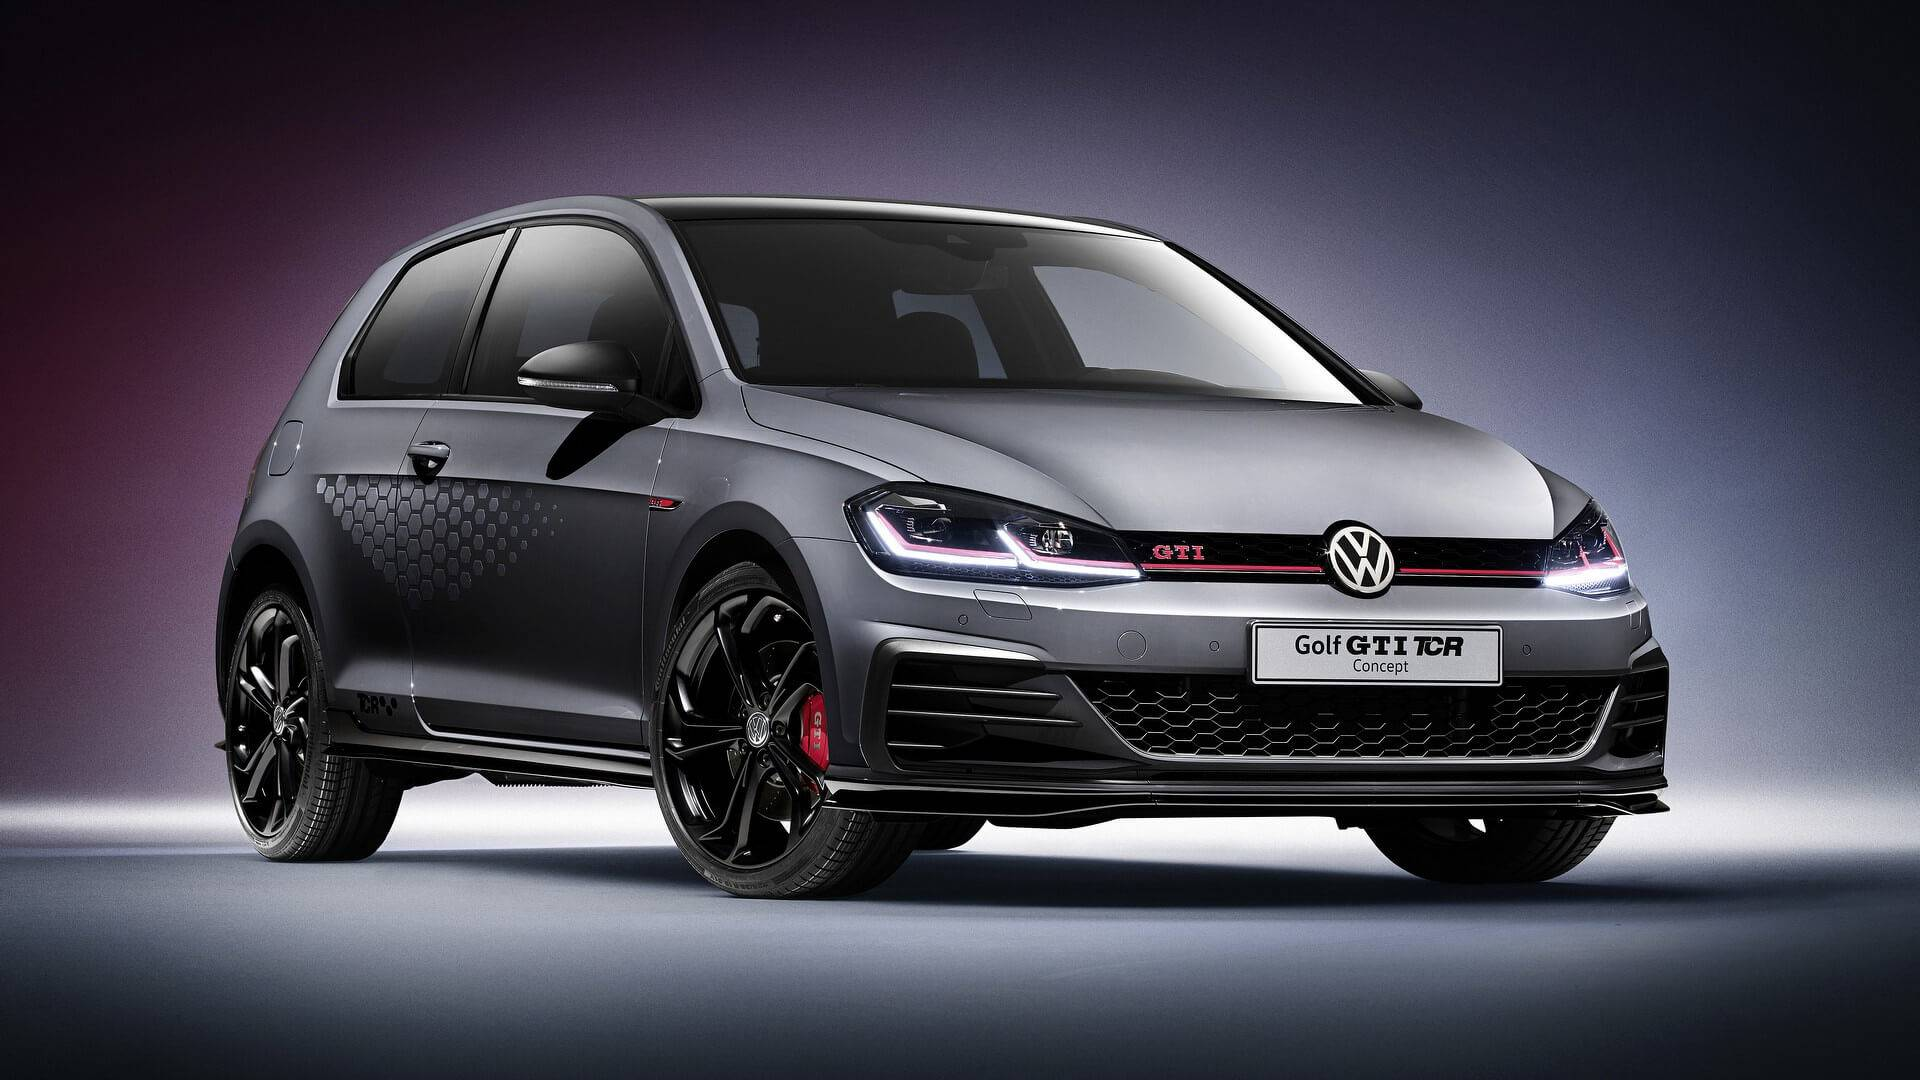 2018-vw-golf-gti-tcr-concept